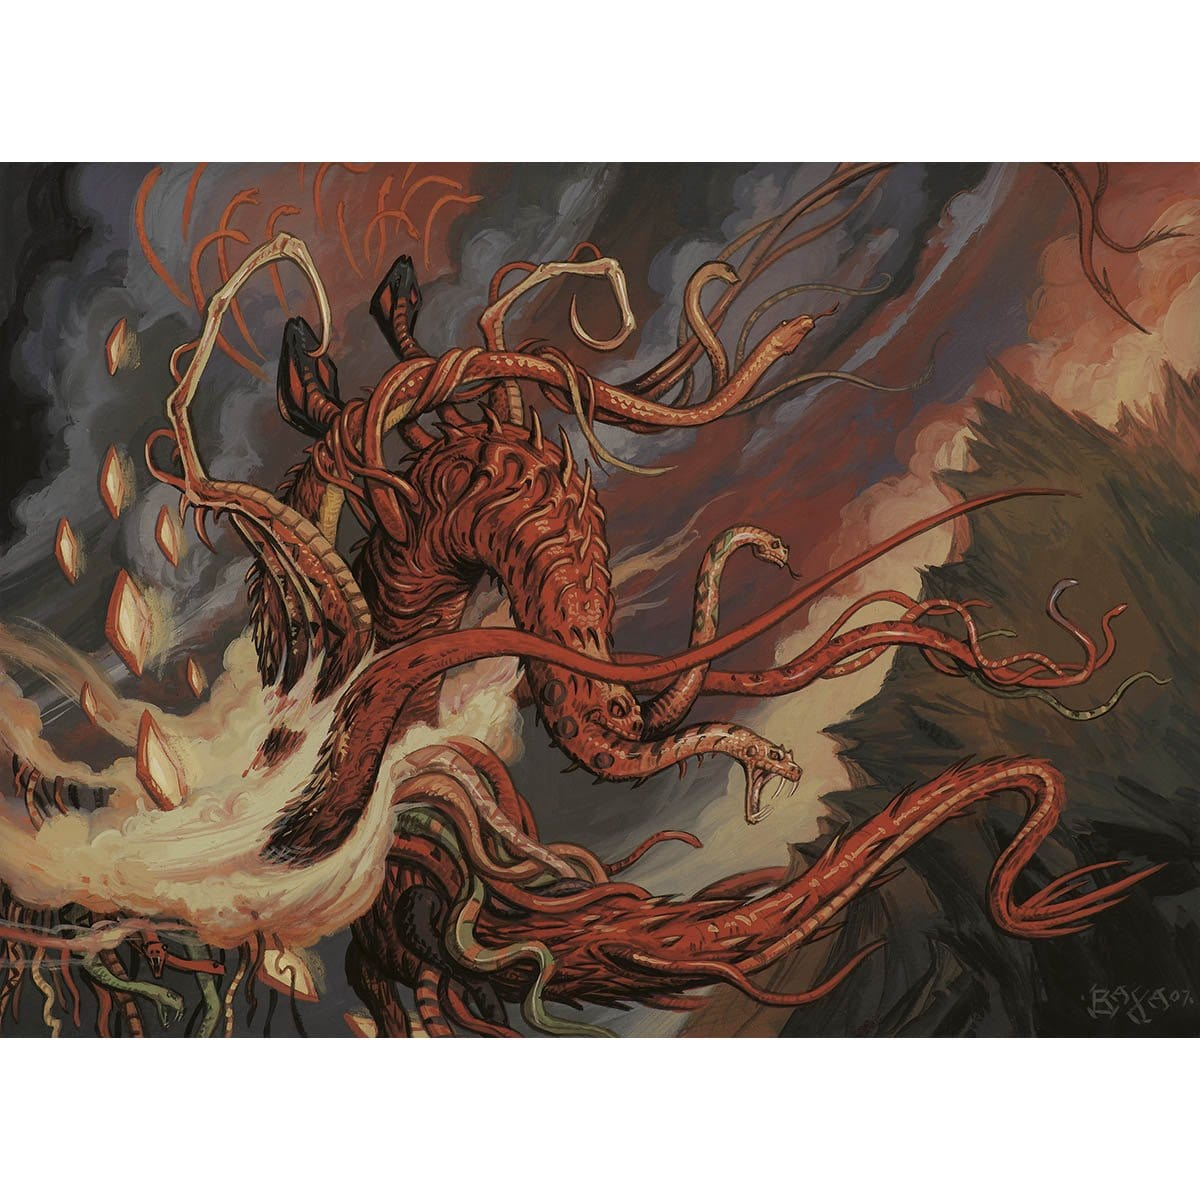 Hateflayer Print - Print - Original Magic Art - Accessories for Magic the Gathering and other card games